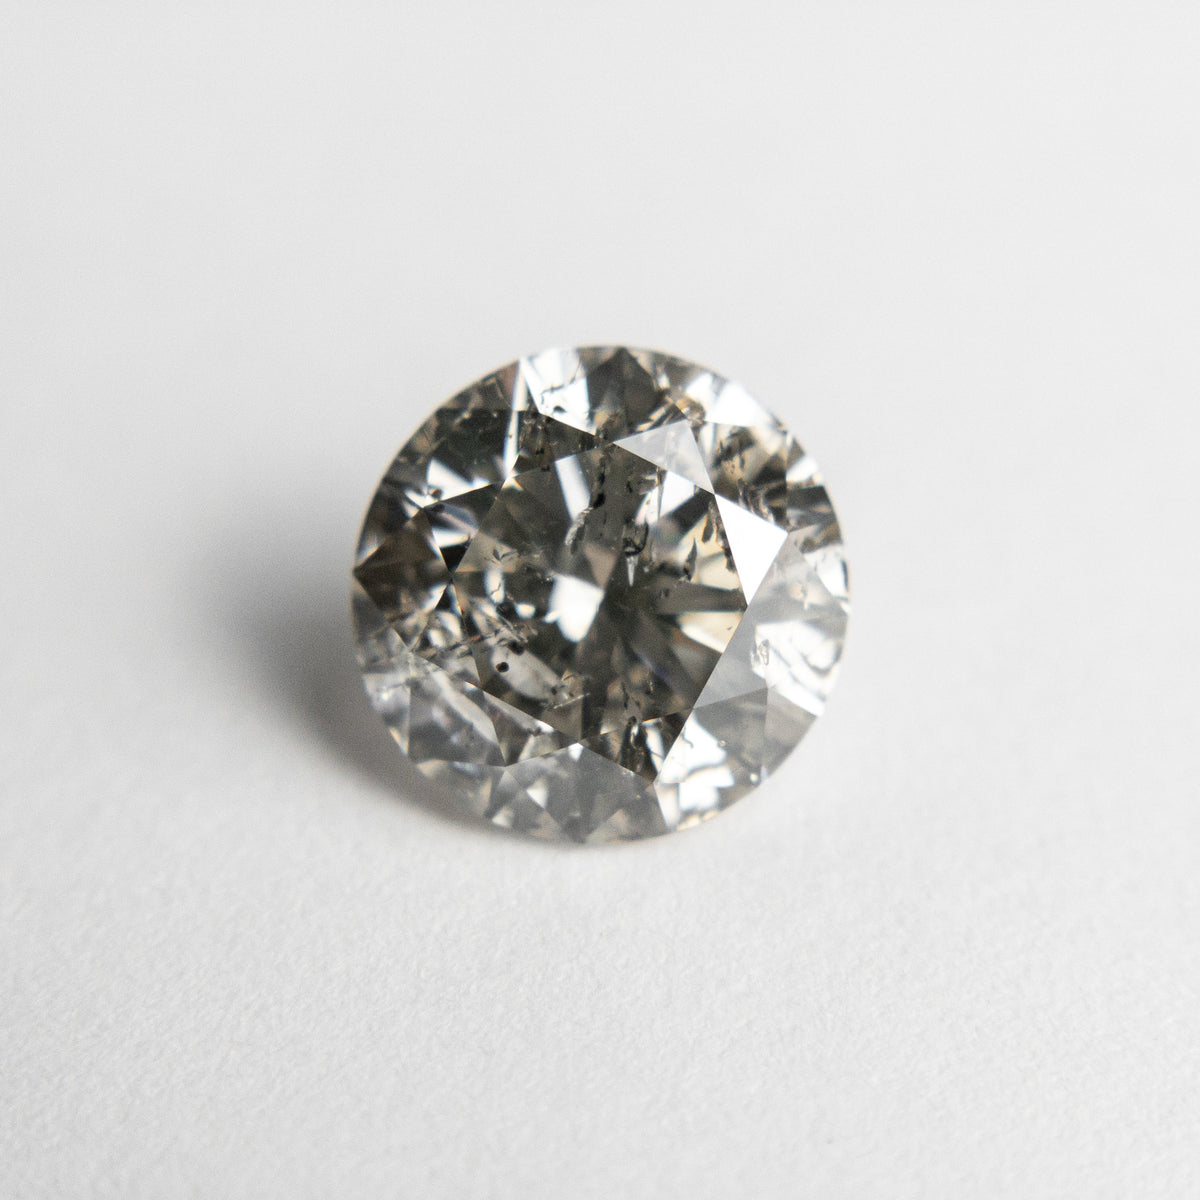 1.80ct 7.78x7.71x4.81mm Champagne Salt and Pepper Round Brilliant 18673-01